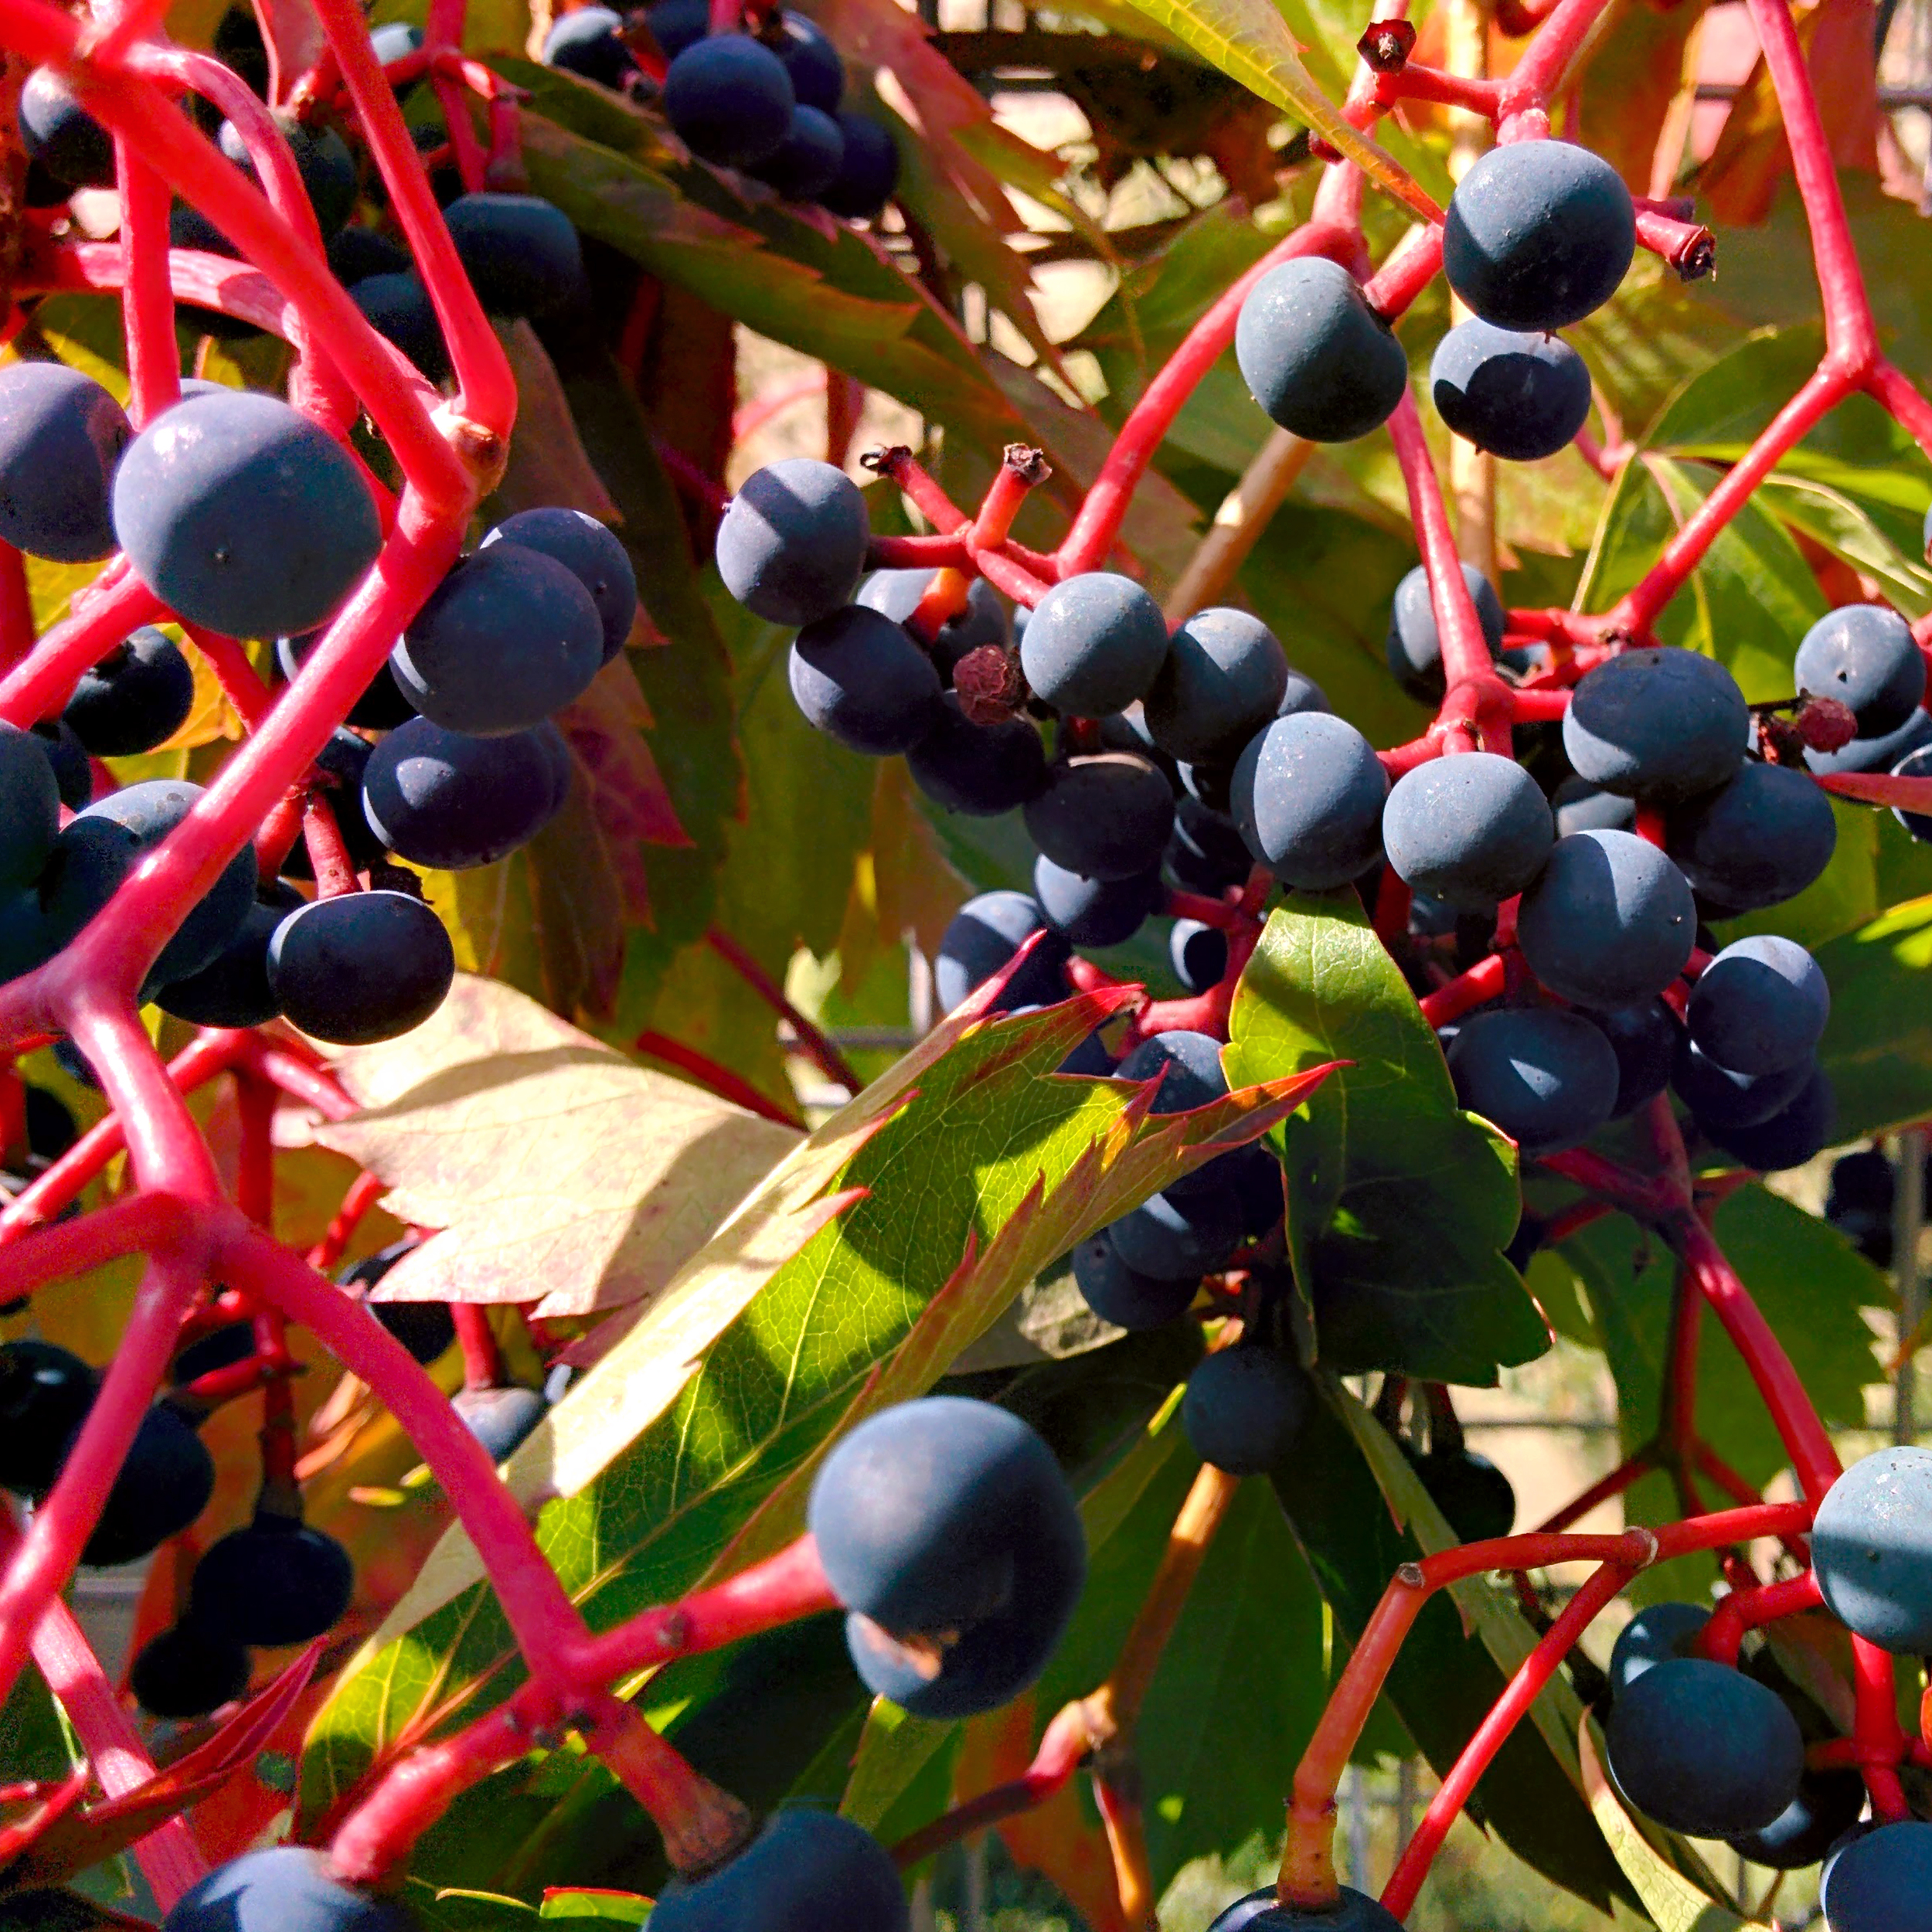 Berries on Fence